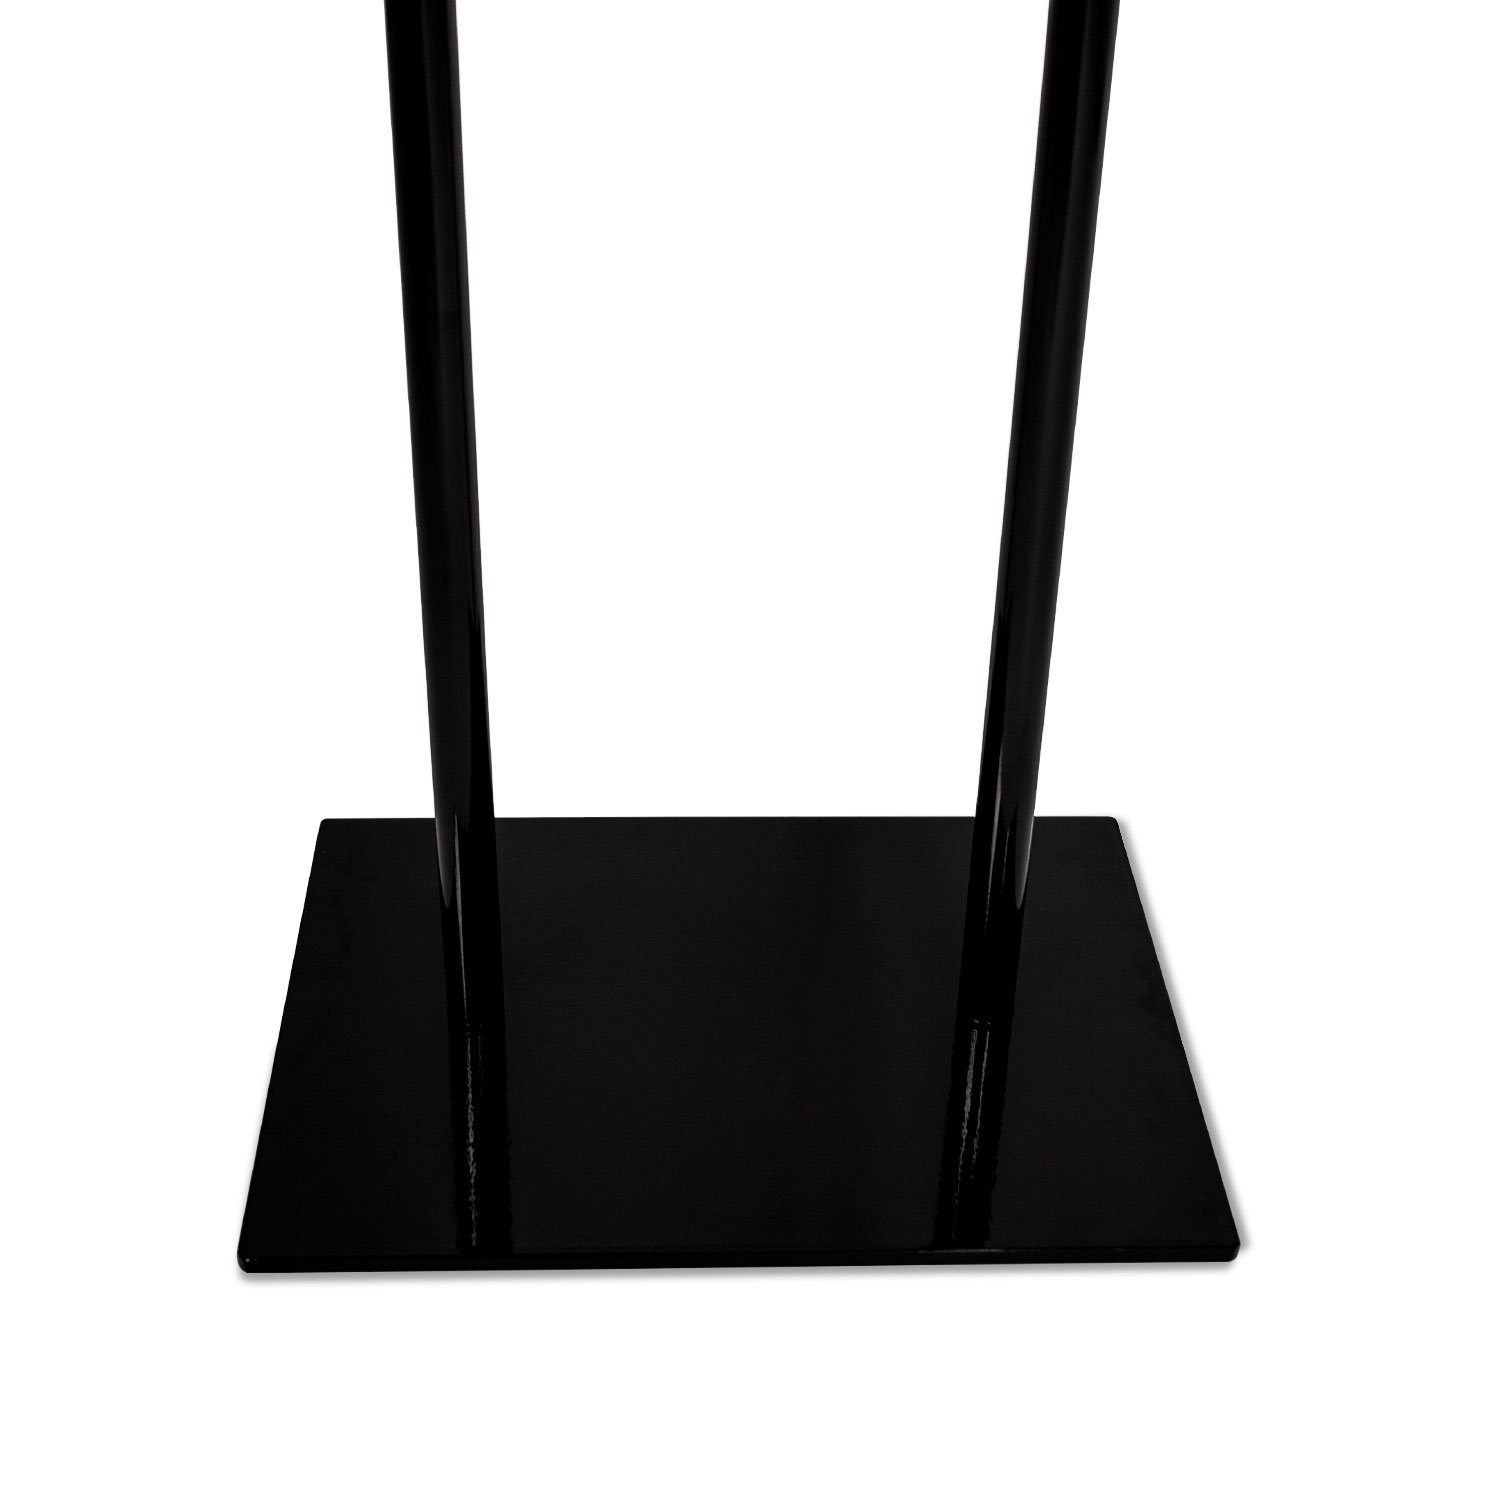 Source One Deluxe 22 x 28, 11 x 17, 8 1/2 x 11 Inch Floor Standing Sign Holders Multiple Colors Black, White & Gray Heavy Duty Weighted Metal (22 x 28 Inch, Black) by SOURCEONE.ORG (Image #2)